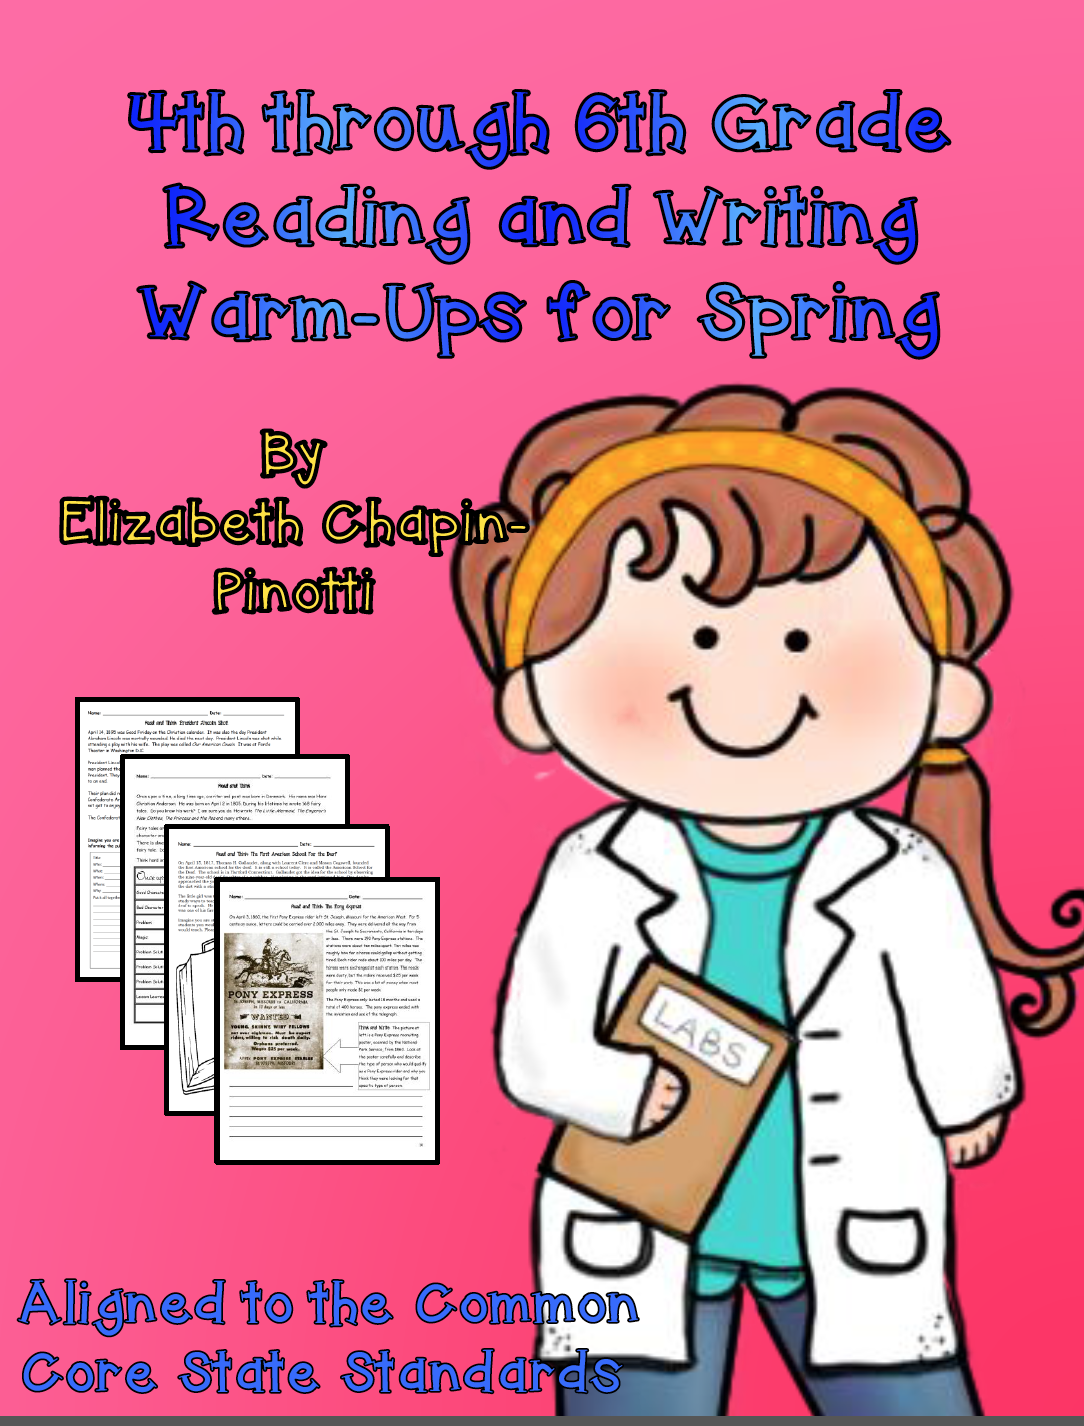 Helping writing essay prompts for 8th grade